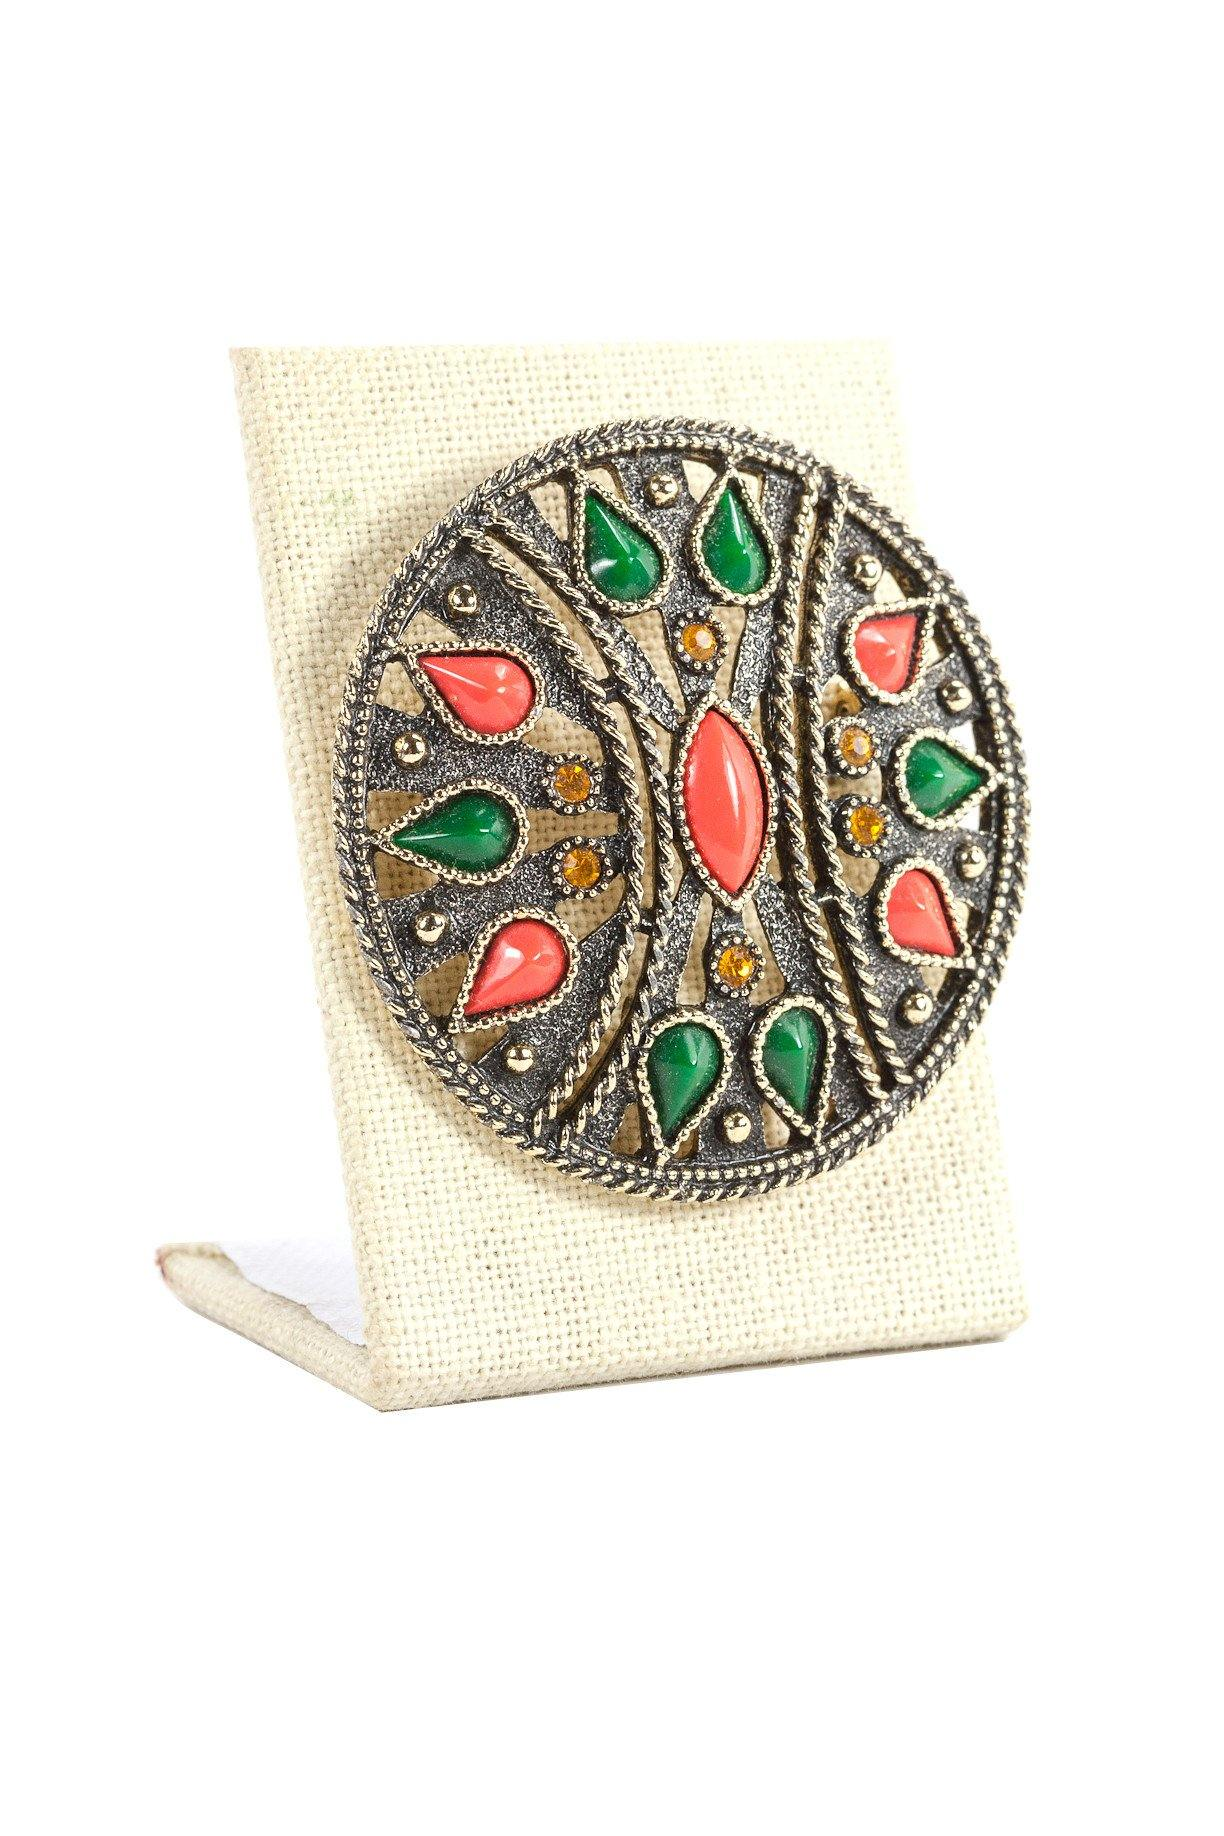 1960's Tiled Emmons Statement Disc Brooch